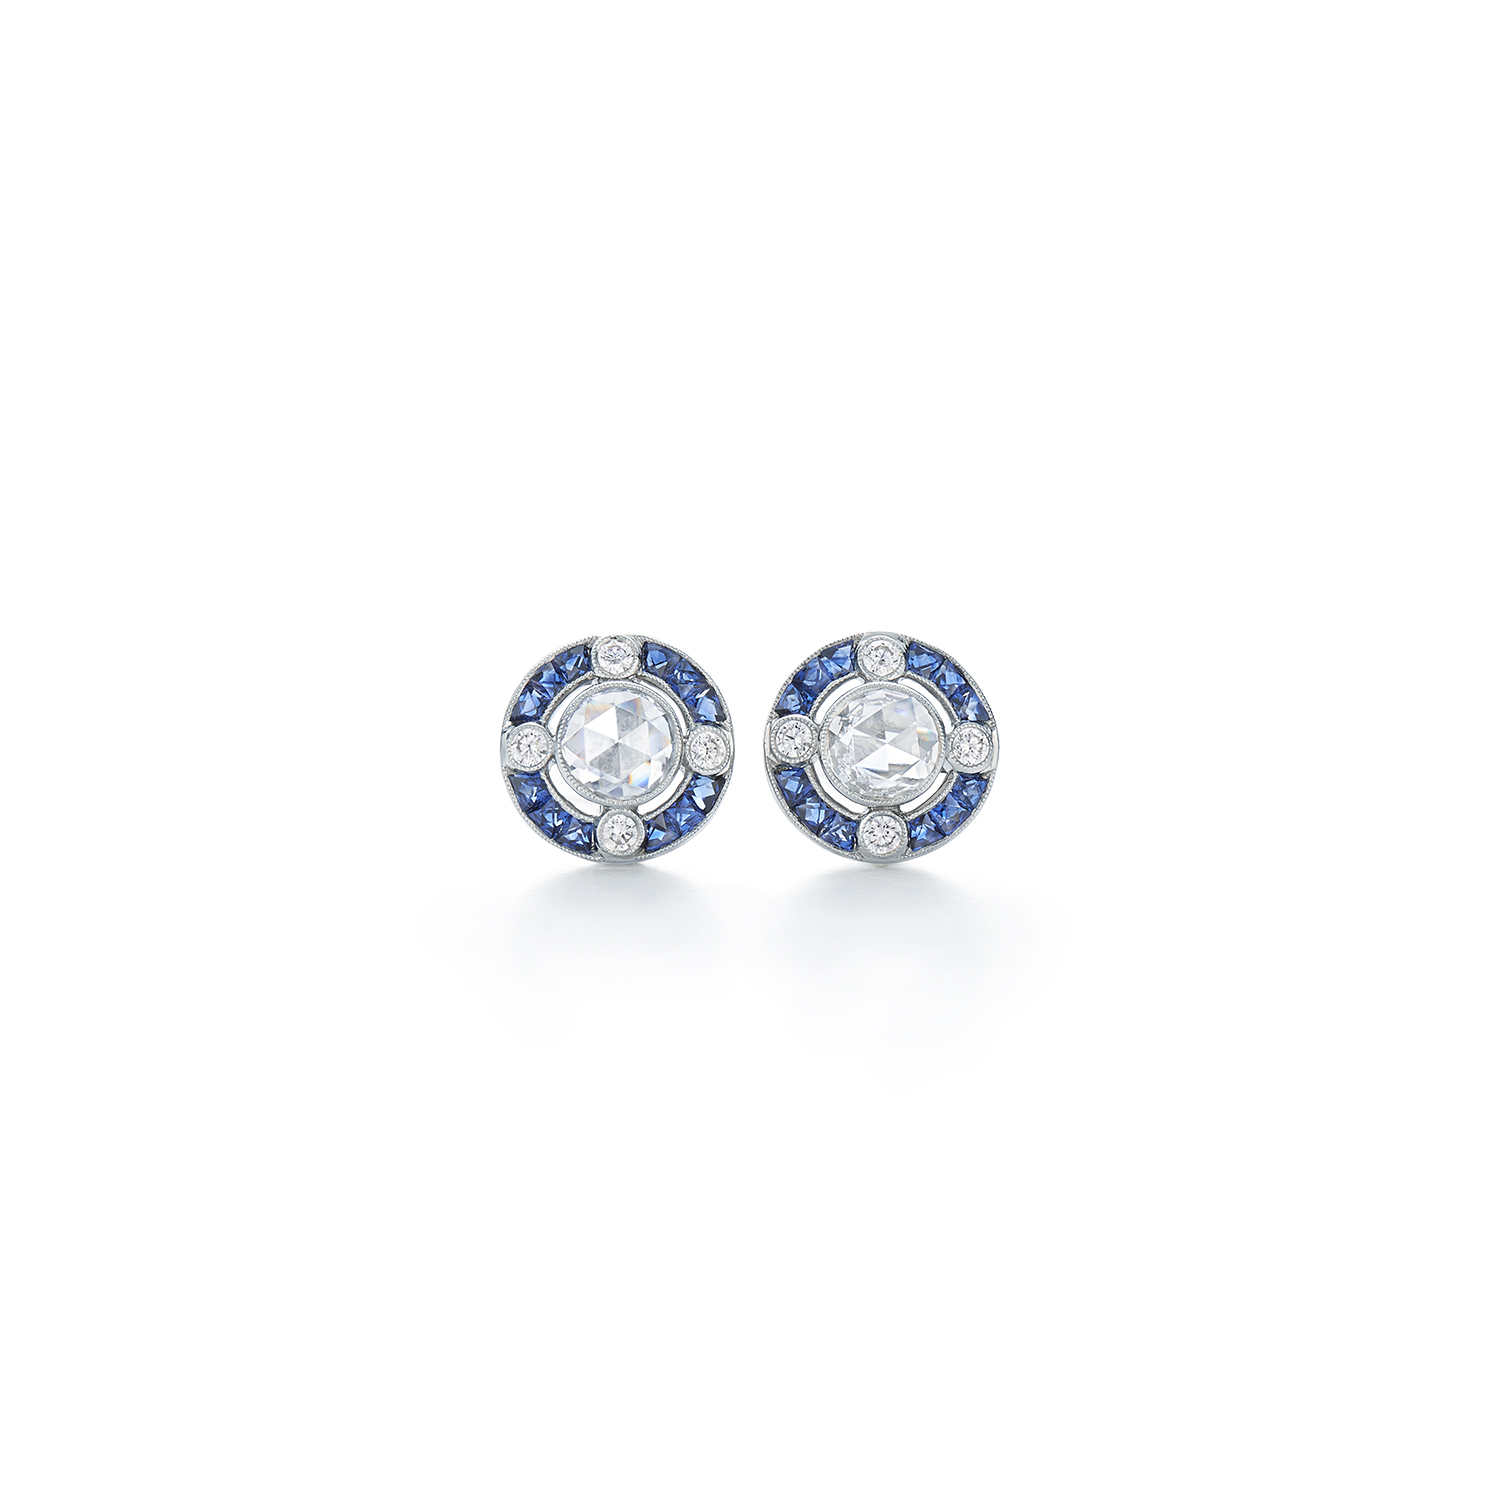 dbts stud jewelry il birthstone saphire etsy september blue market earrings silver sapphire